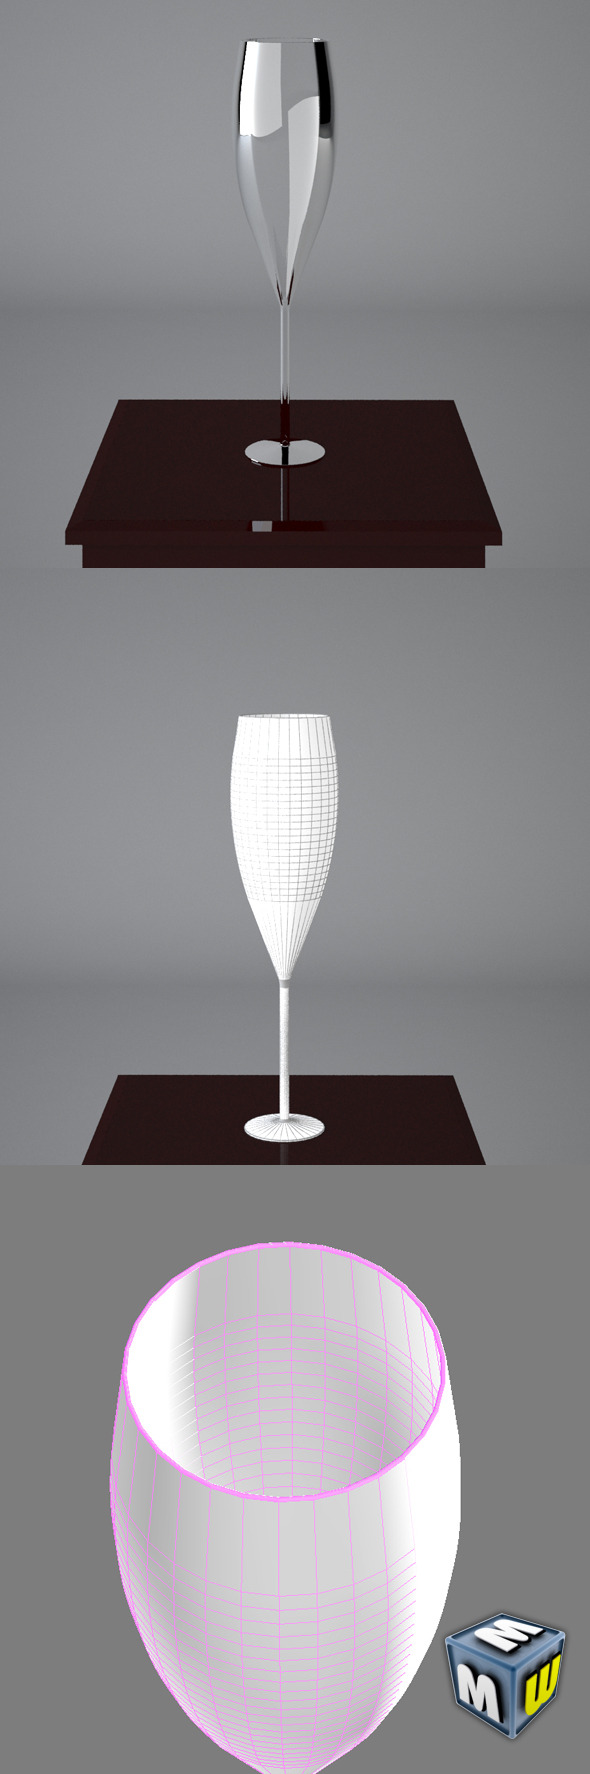 Cup 2 MAX 2011 - 3DOcean Item for Sale